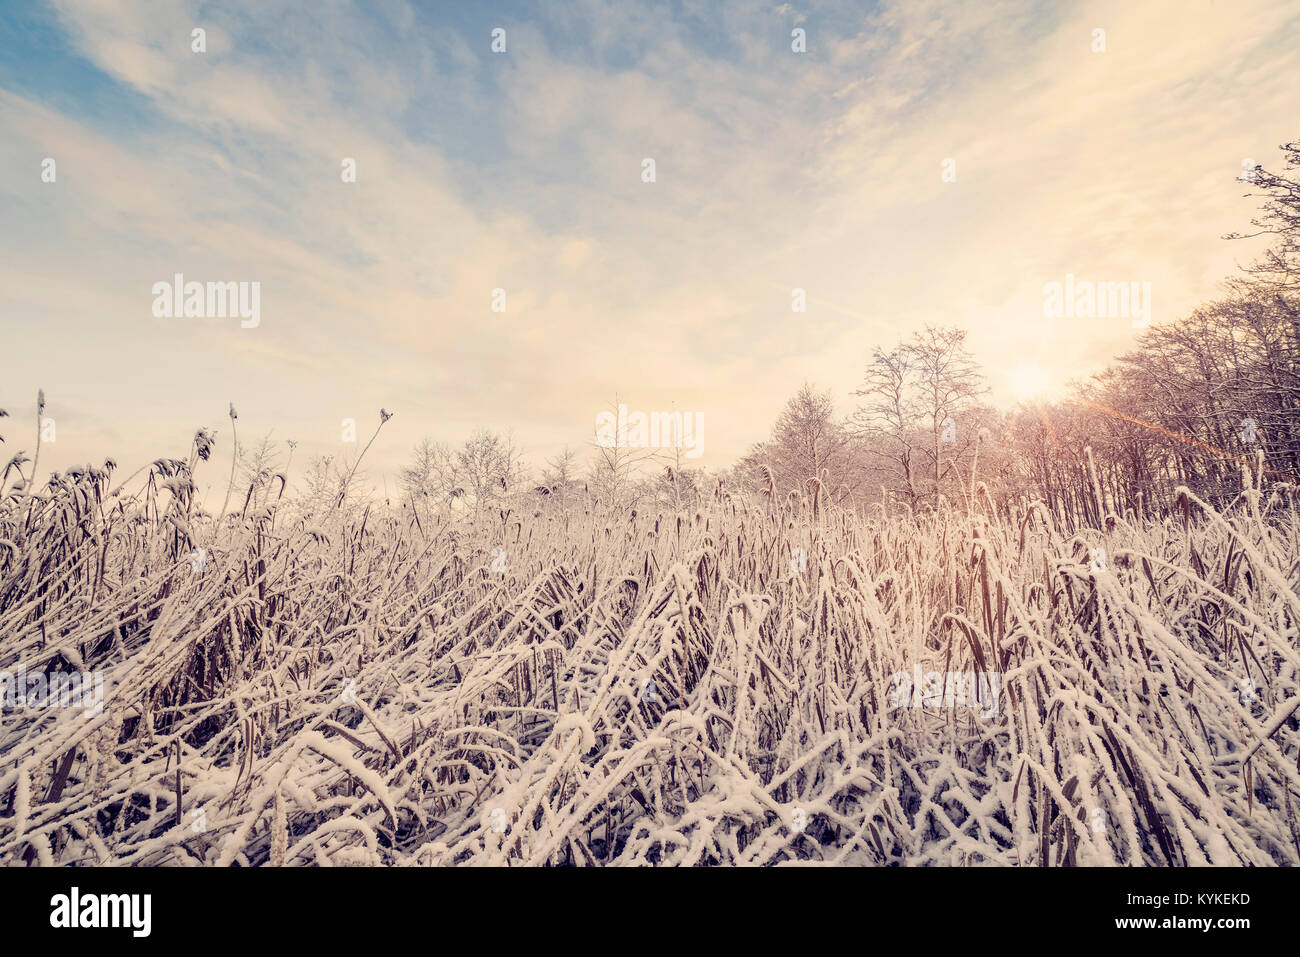 Wilderness with frozen nature in the winter in the morning sunrise - Stock Image